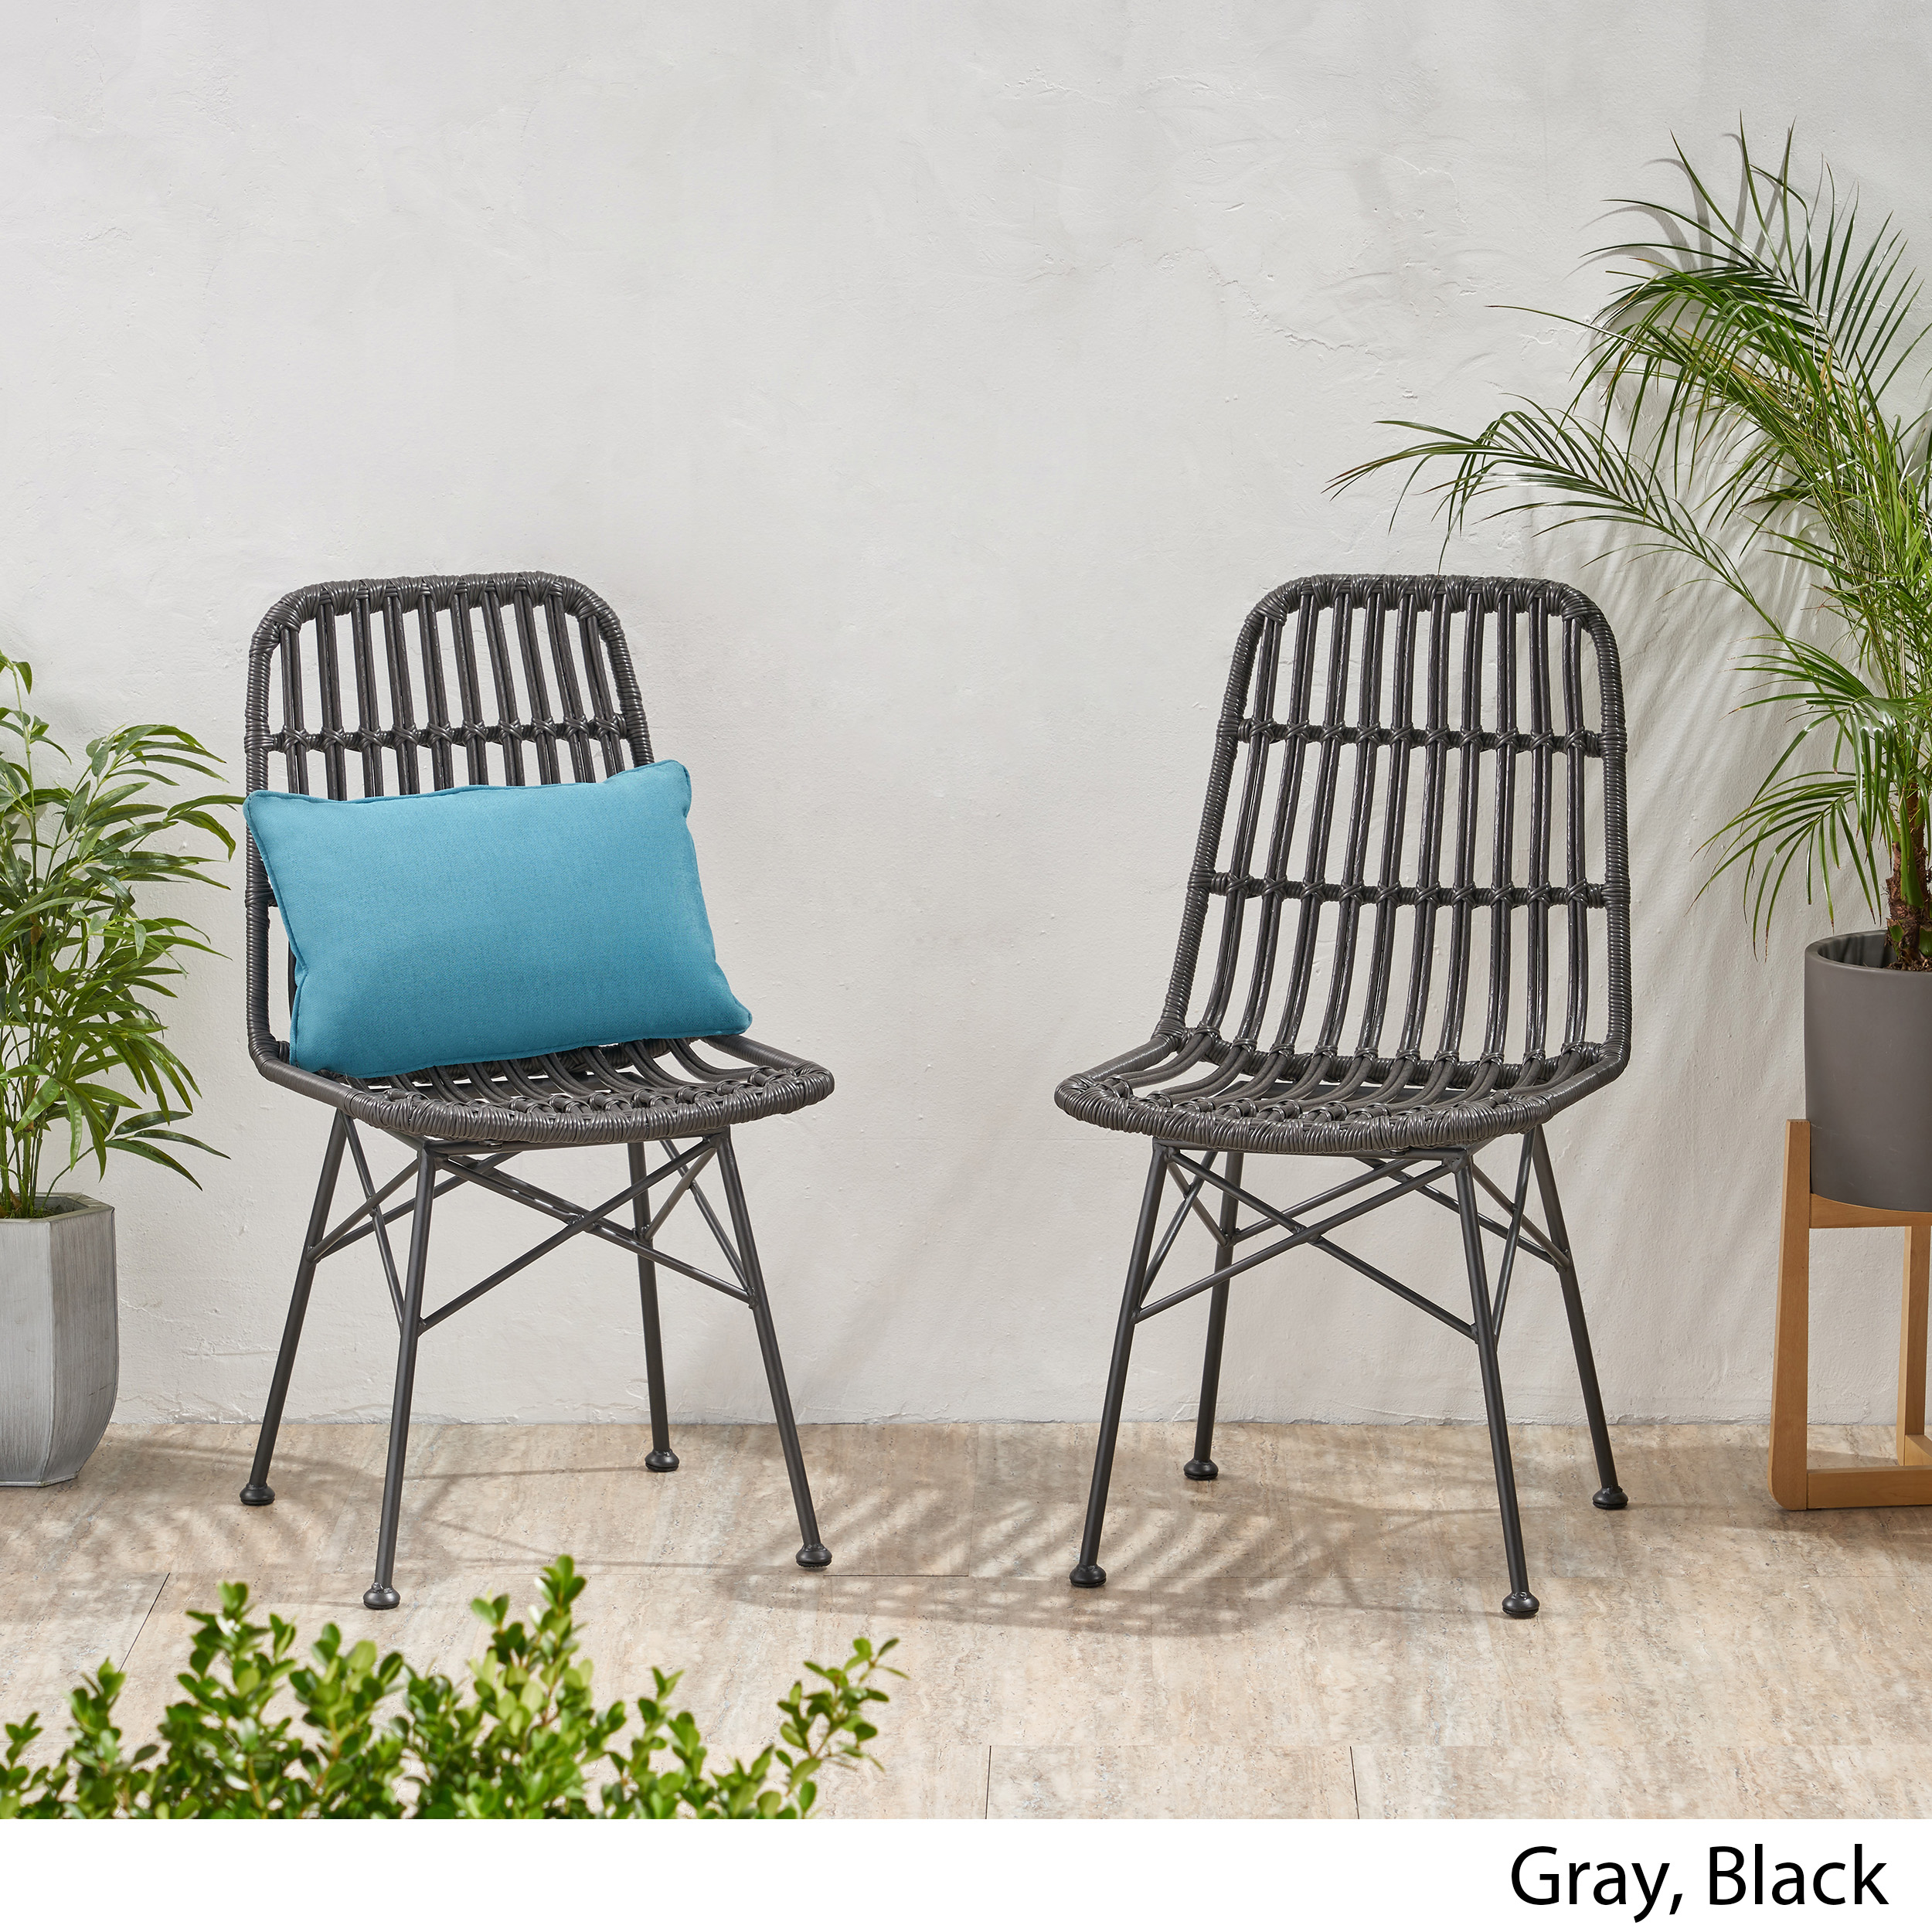 Details about Yilia Outdoor Wicker Dining Chair (Set of 2)